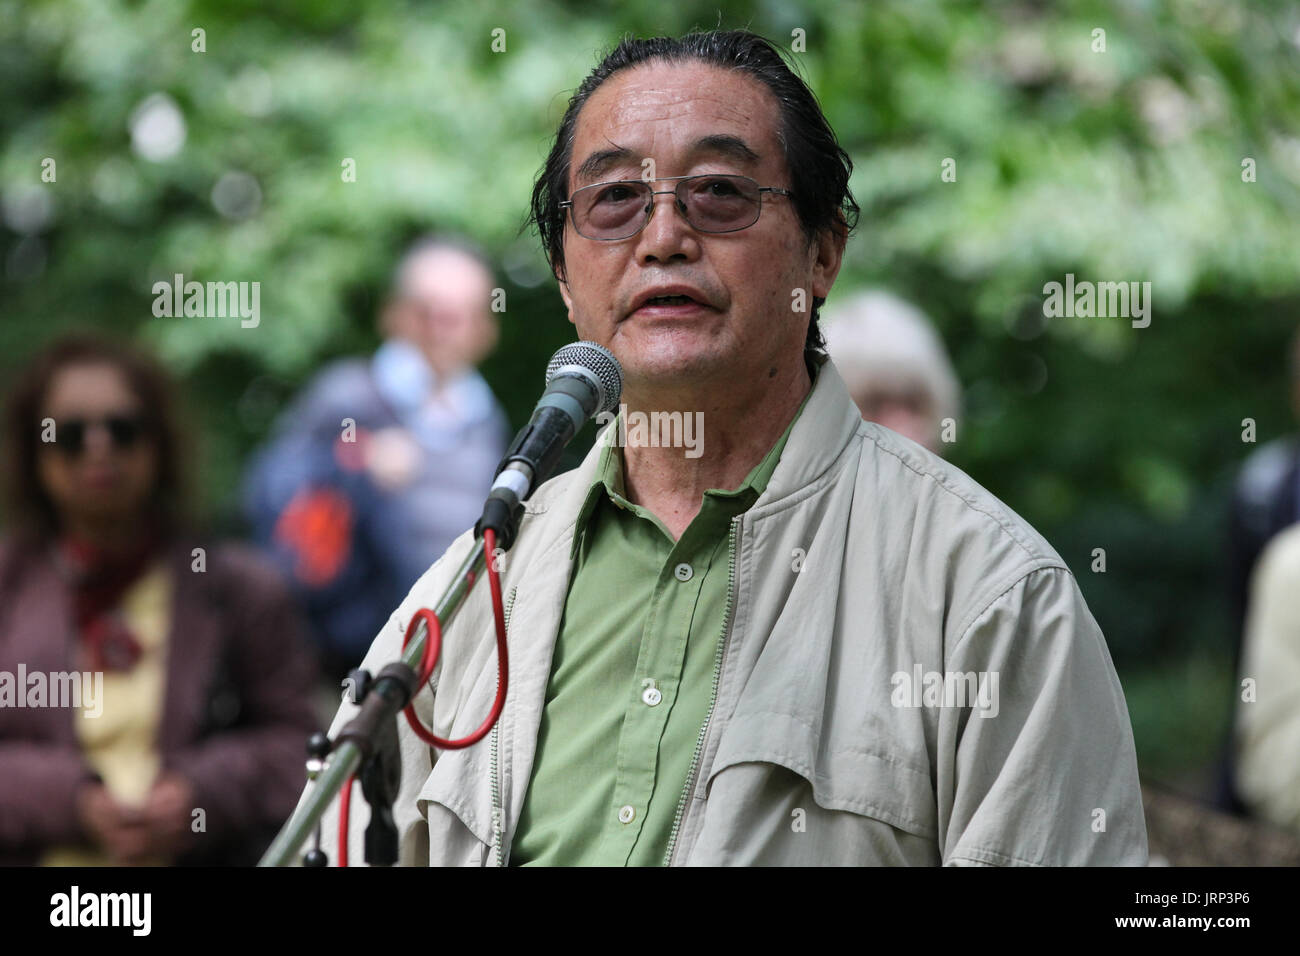 London, UK. 6th August, 2017. Shigeo Kobayashi of the Campaign for Nuclear Disarmament (CND) addresses peace campaigners attending the annual Hiroshima Day anniversary event in Tavistock Square, next to the commemorative Hiroshima cherry tree. Credit: Mark Kerrison/Alamy Live News - Stock Image